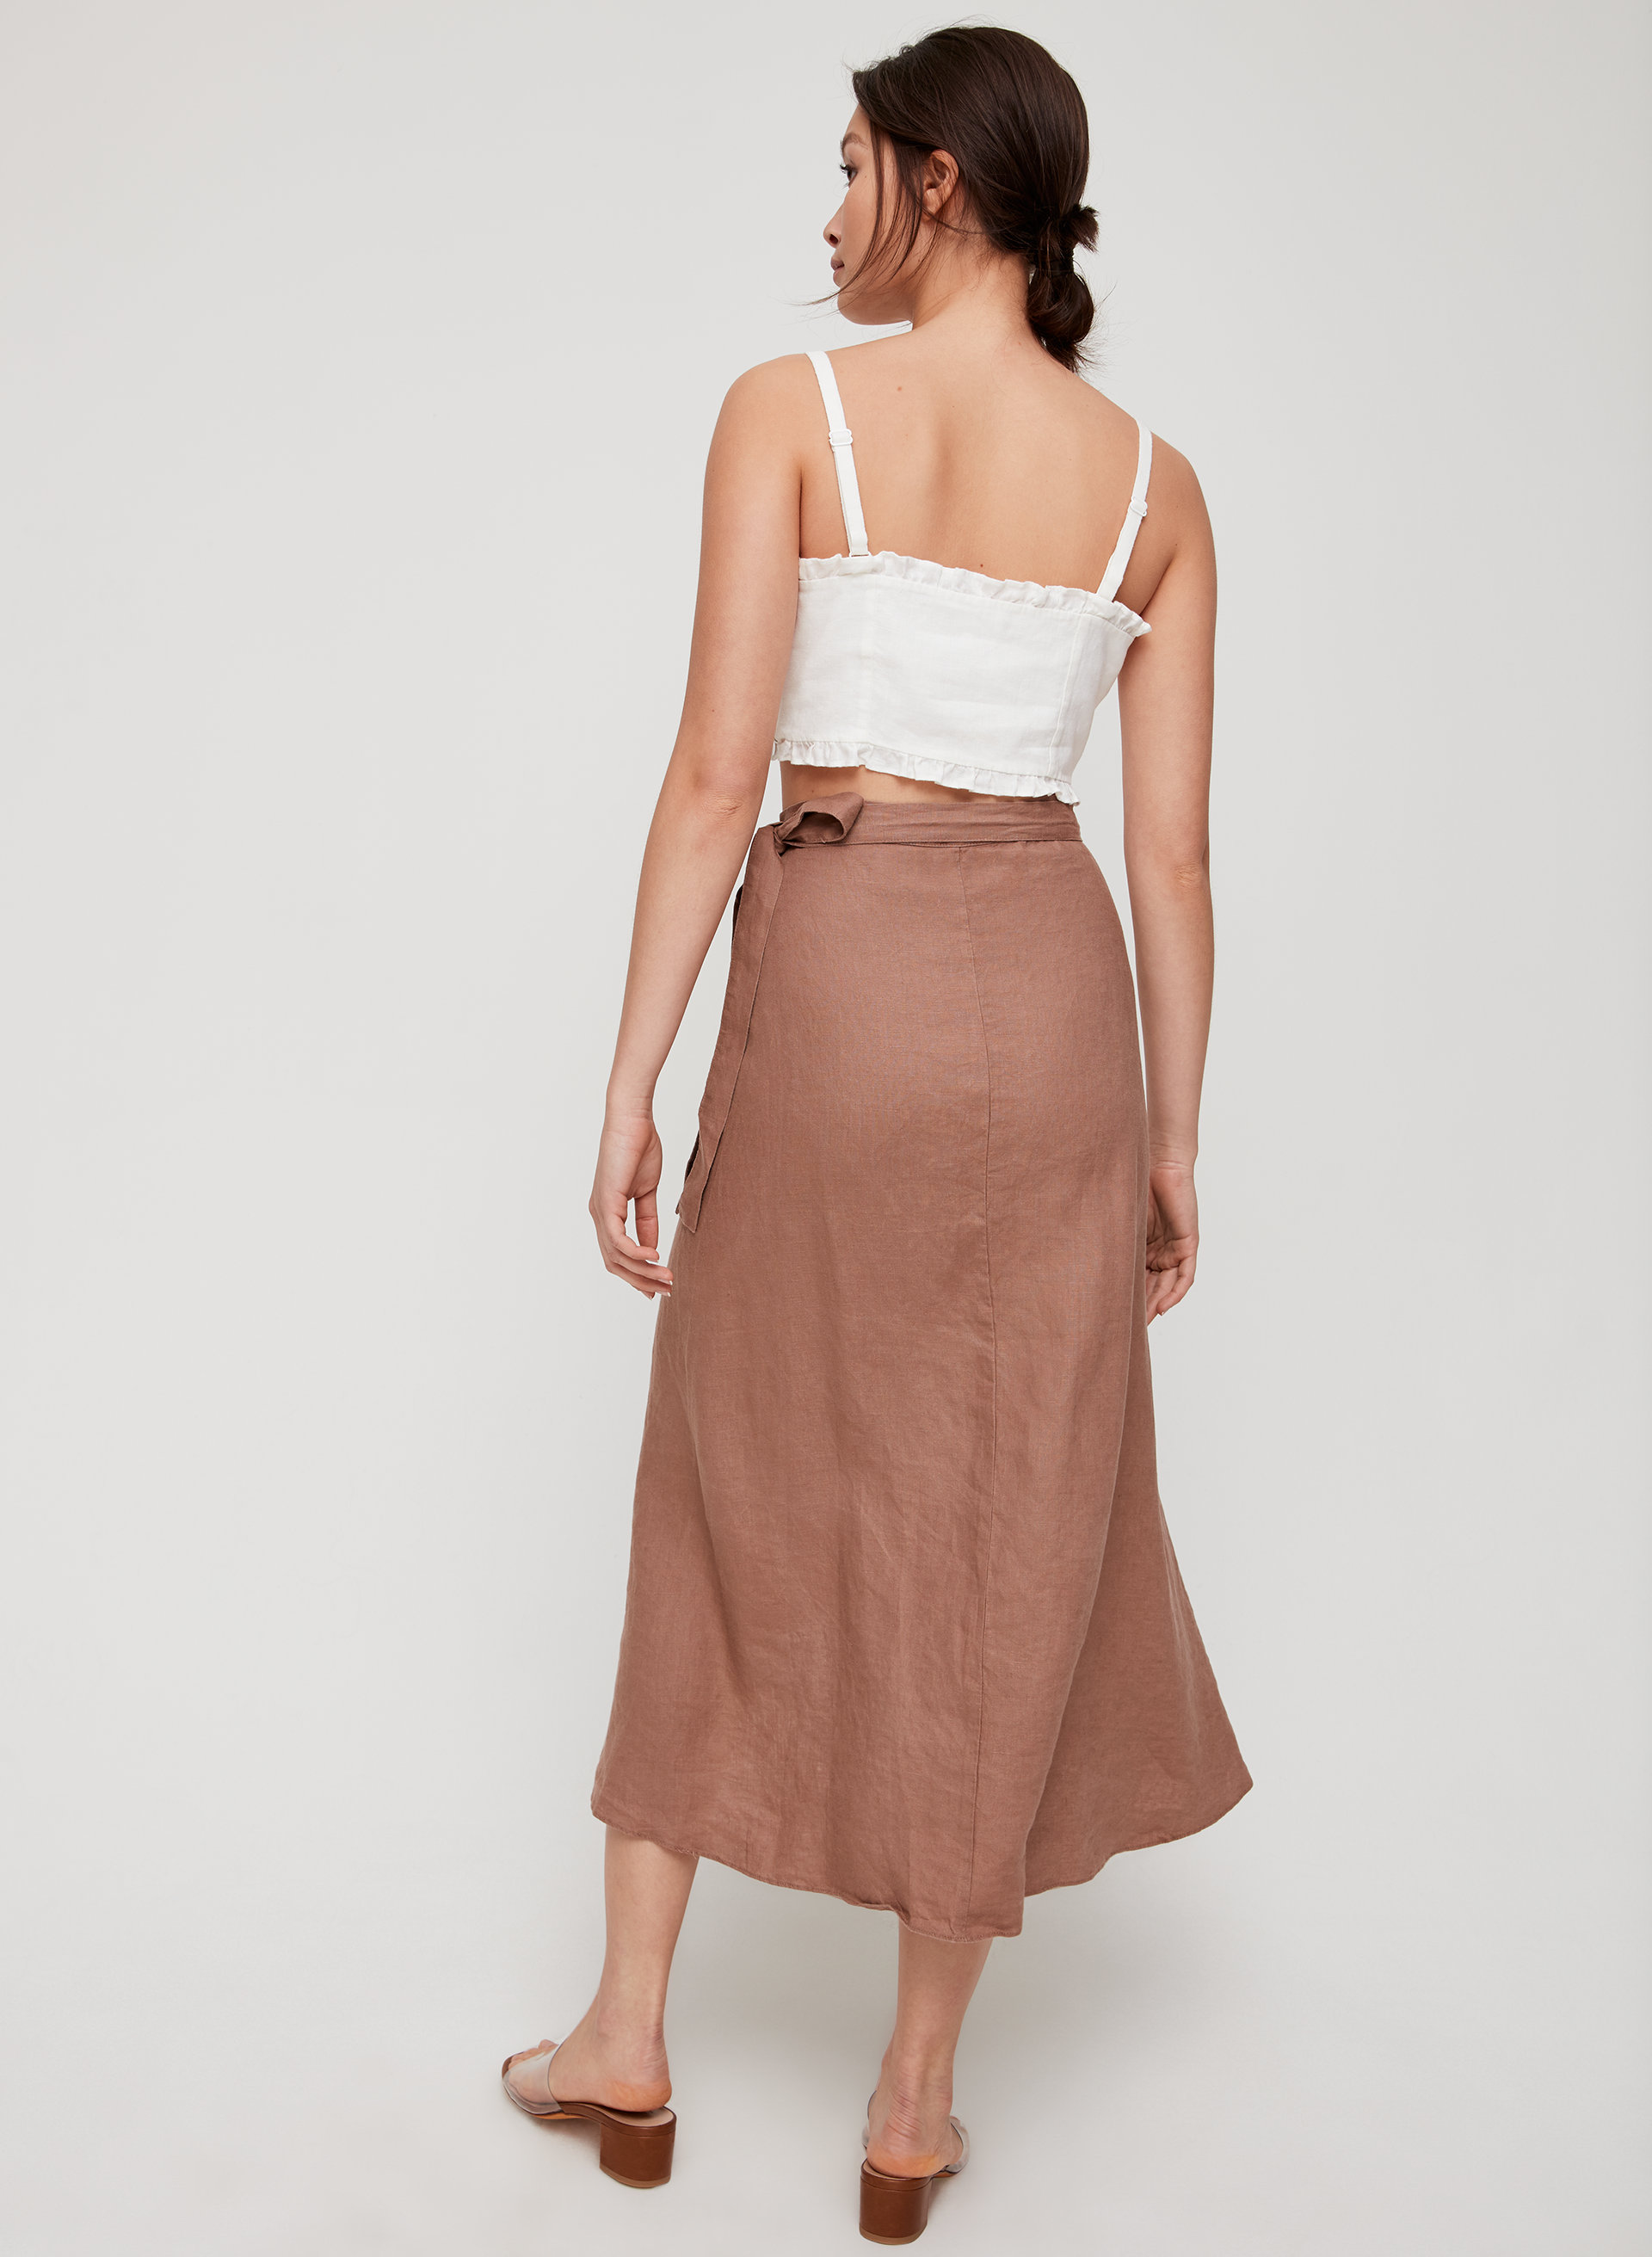 f57c52d294 ELETA SKIRT - Linen-blend, wrap midi skirt